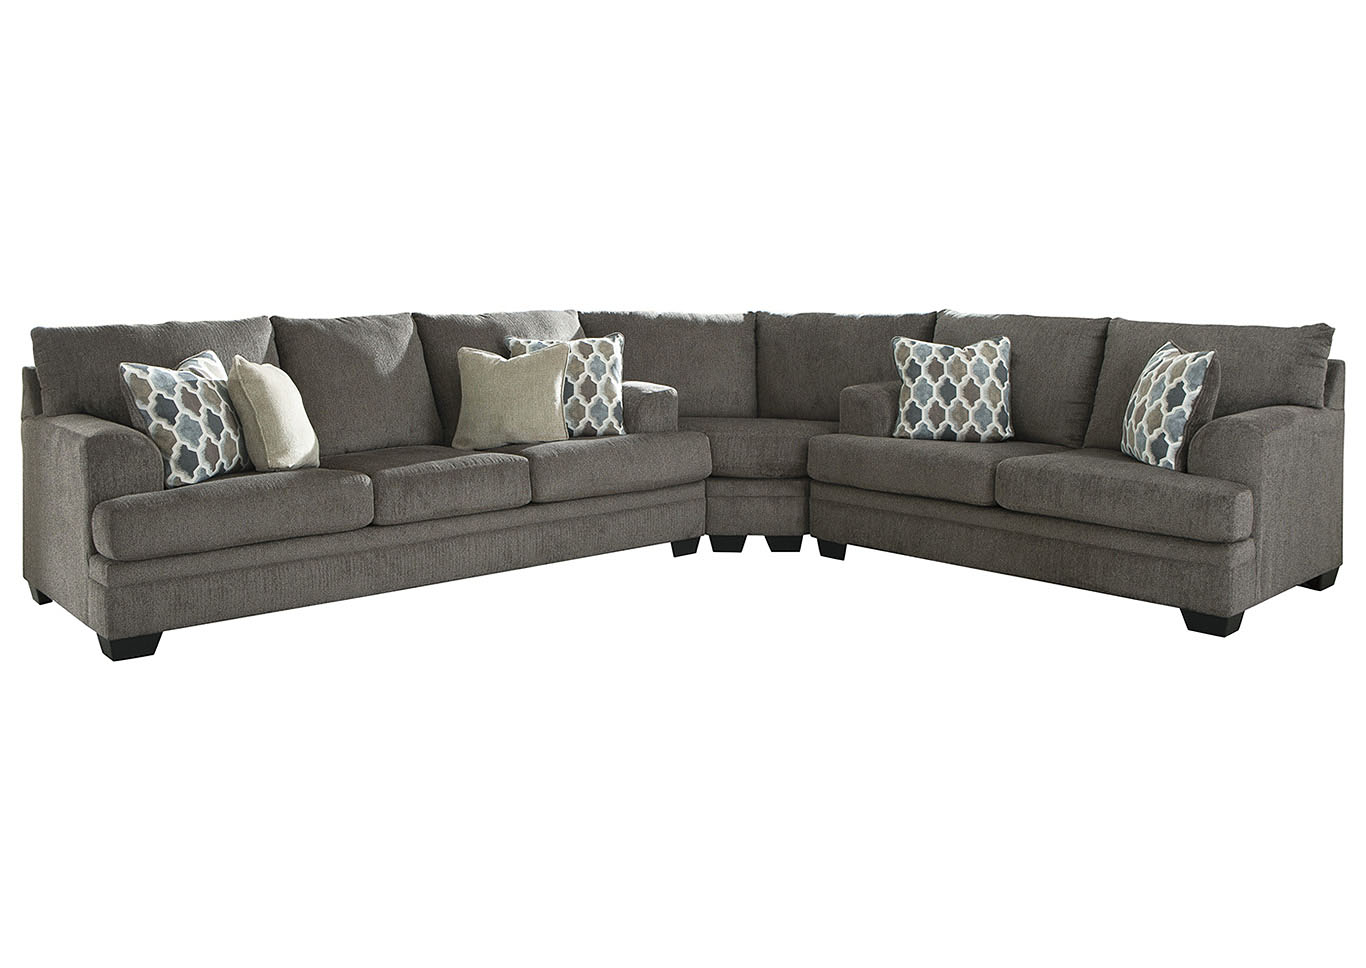 Dorsten Slate Sectional,Signature Design By Ashley